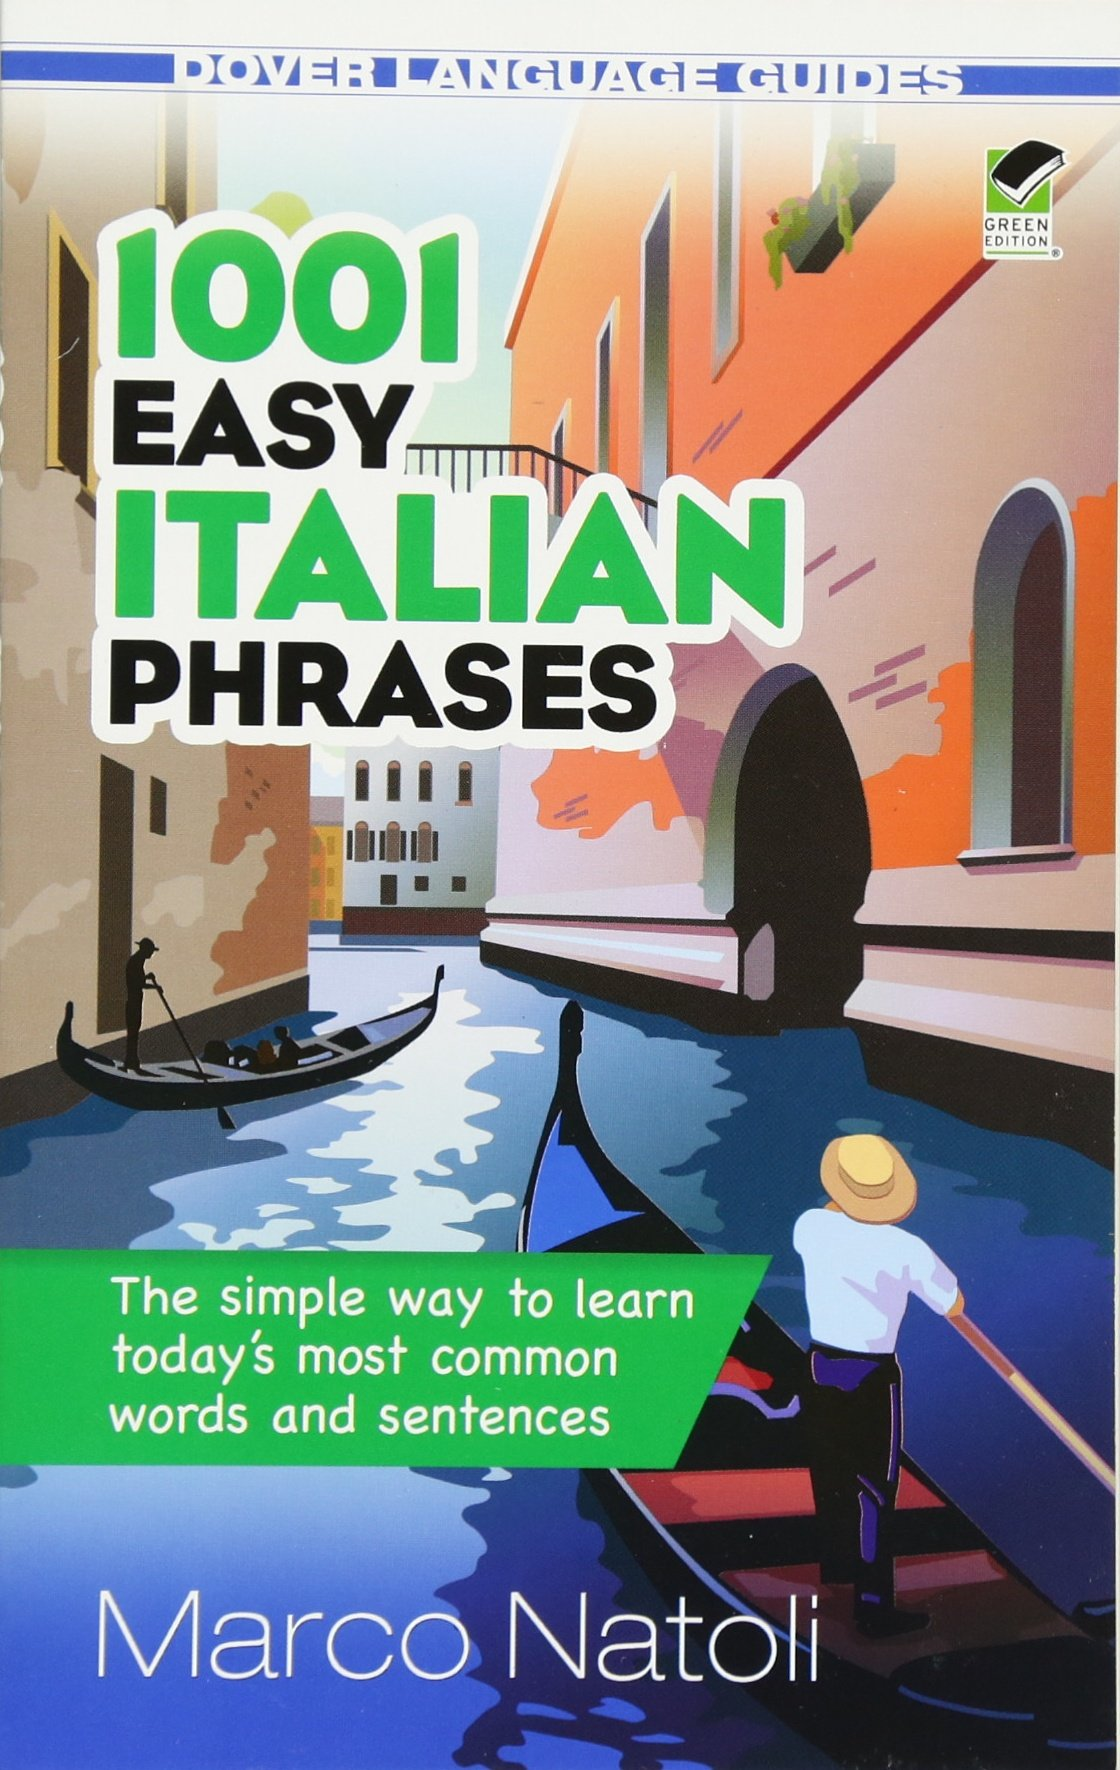 1001 Easy Italian Phrases (Dover Language Guides Italian): Marco Natoli:  9780486476292: Amazon.com: Books